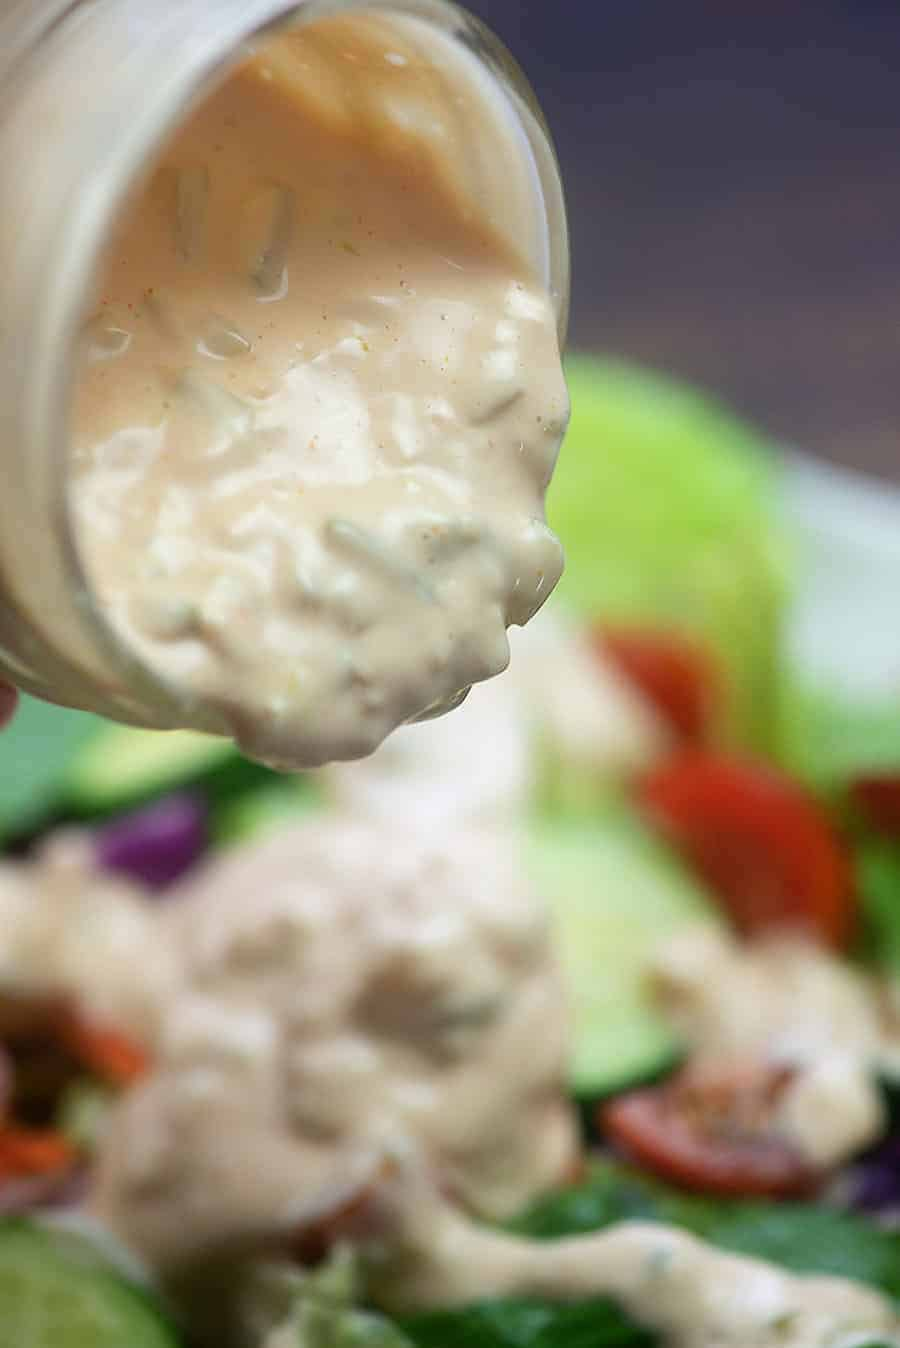 Thousand Island Dressing Recipe! Homemade, sugar free, low carb, and keto approved! #lchf #lowcarb #keto